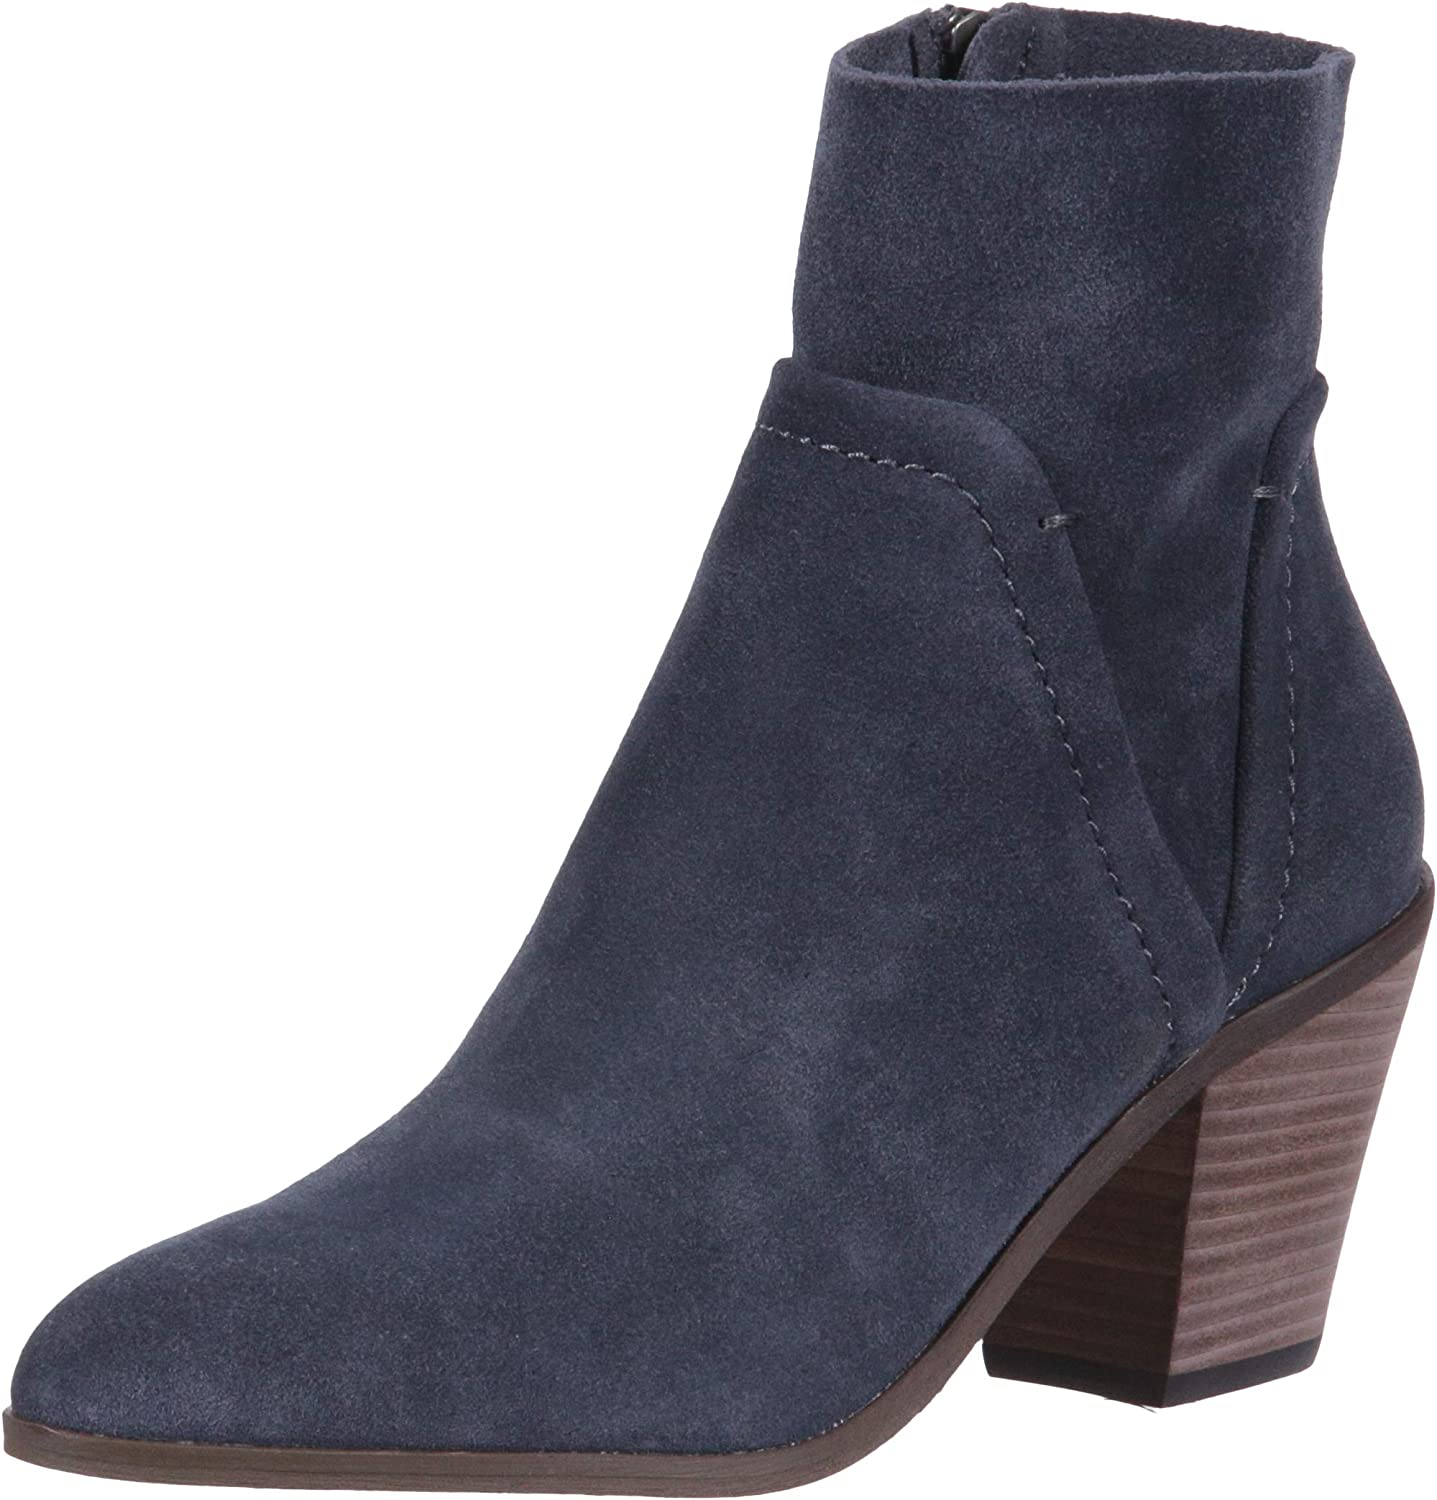 Splendid Women's Max 45% OFF Cherie Outlet sale feature Ankle Boot